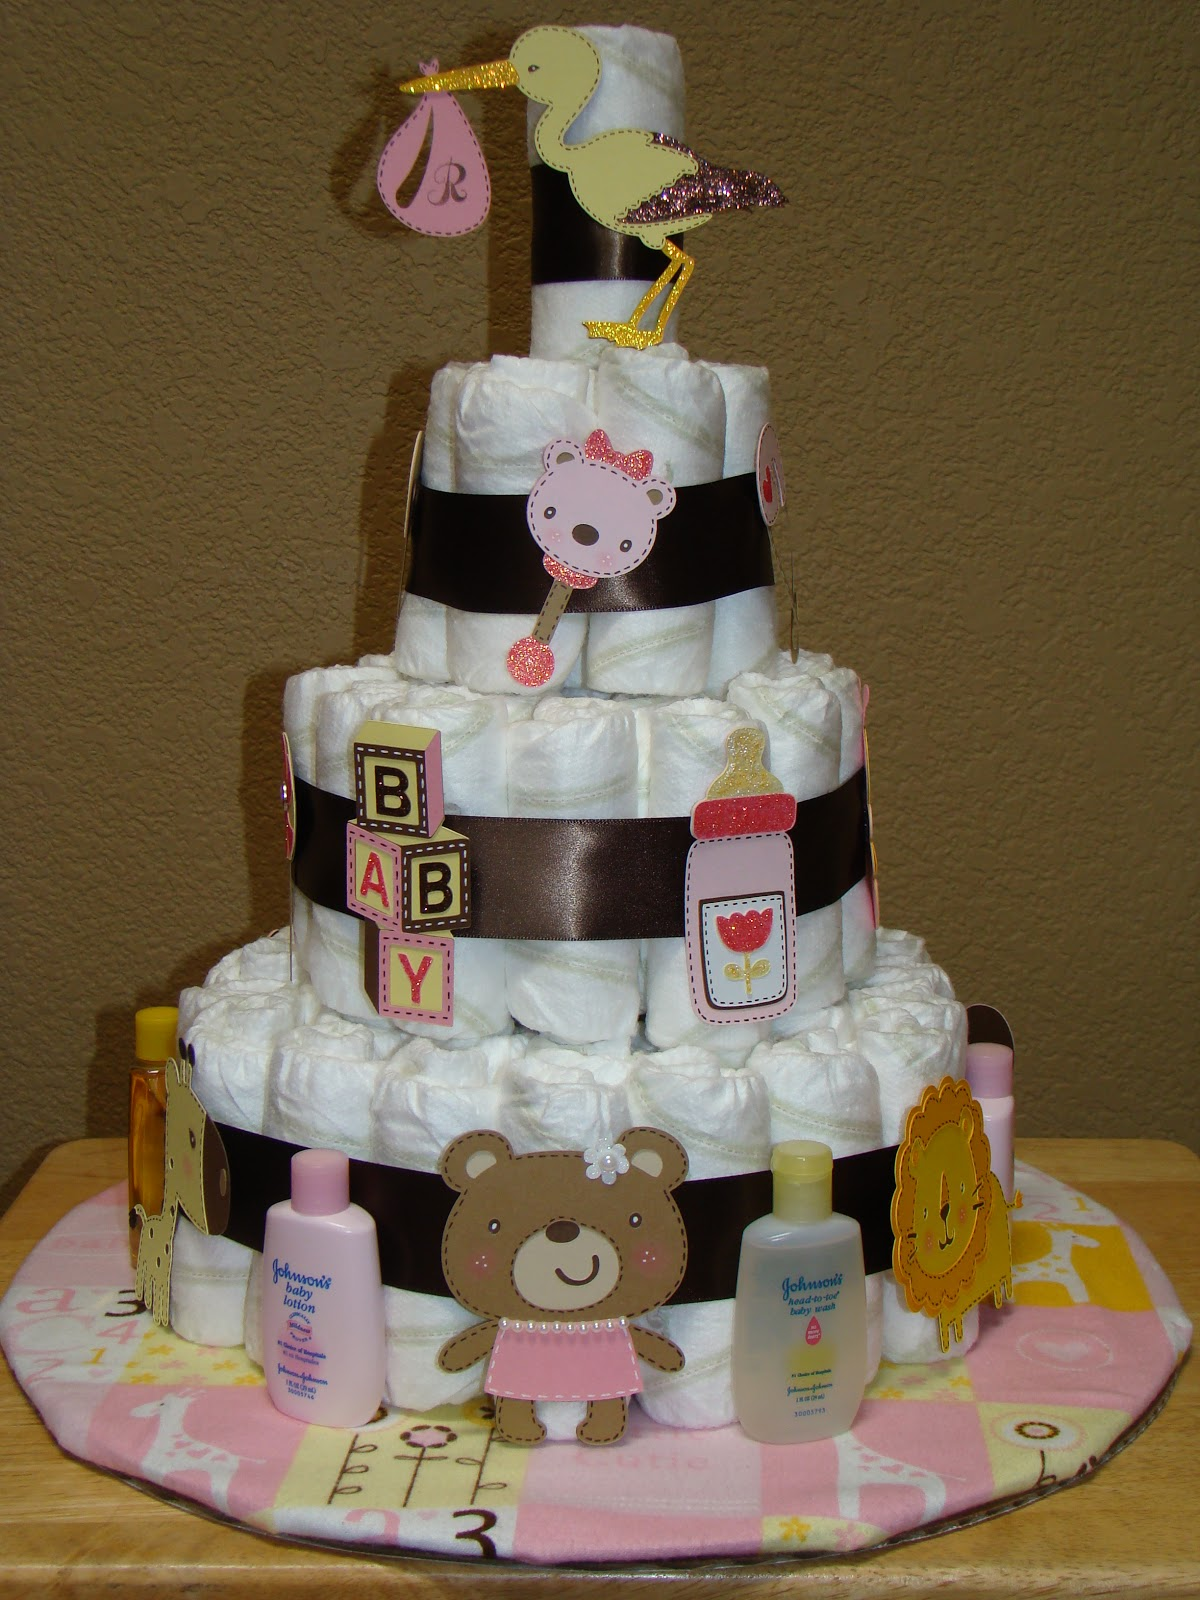 Creating with color by cassandra its a diaper cake well thats it very first diaper cake my pictures dont even come close to how cute it is in person i almost hated to give it away lol publicscrutiny Image collections